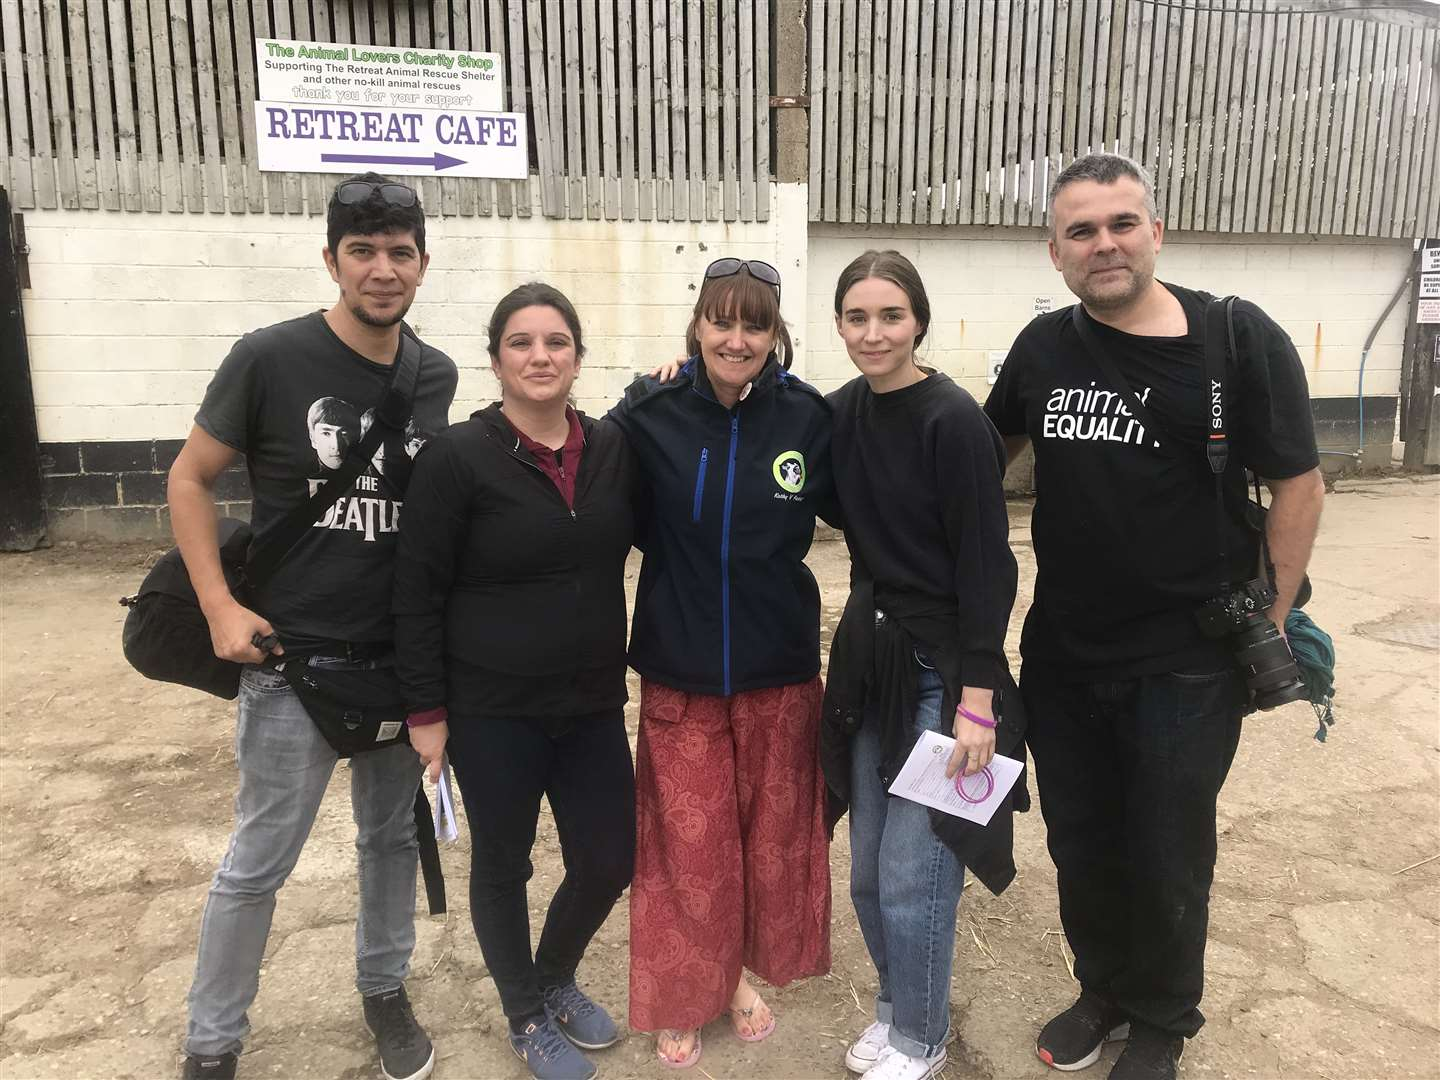 Rooney Mara (second right) picture with her team and The Retreat staff